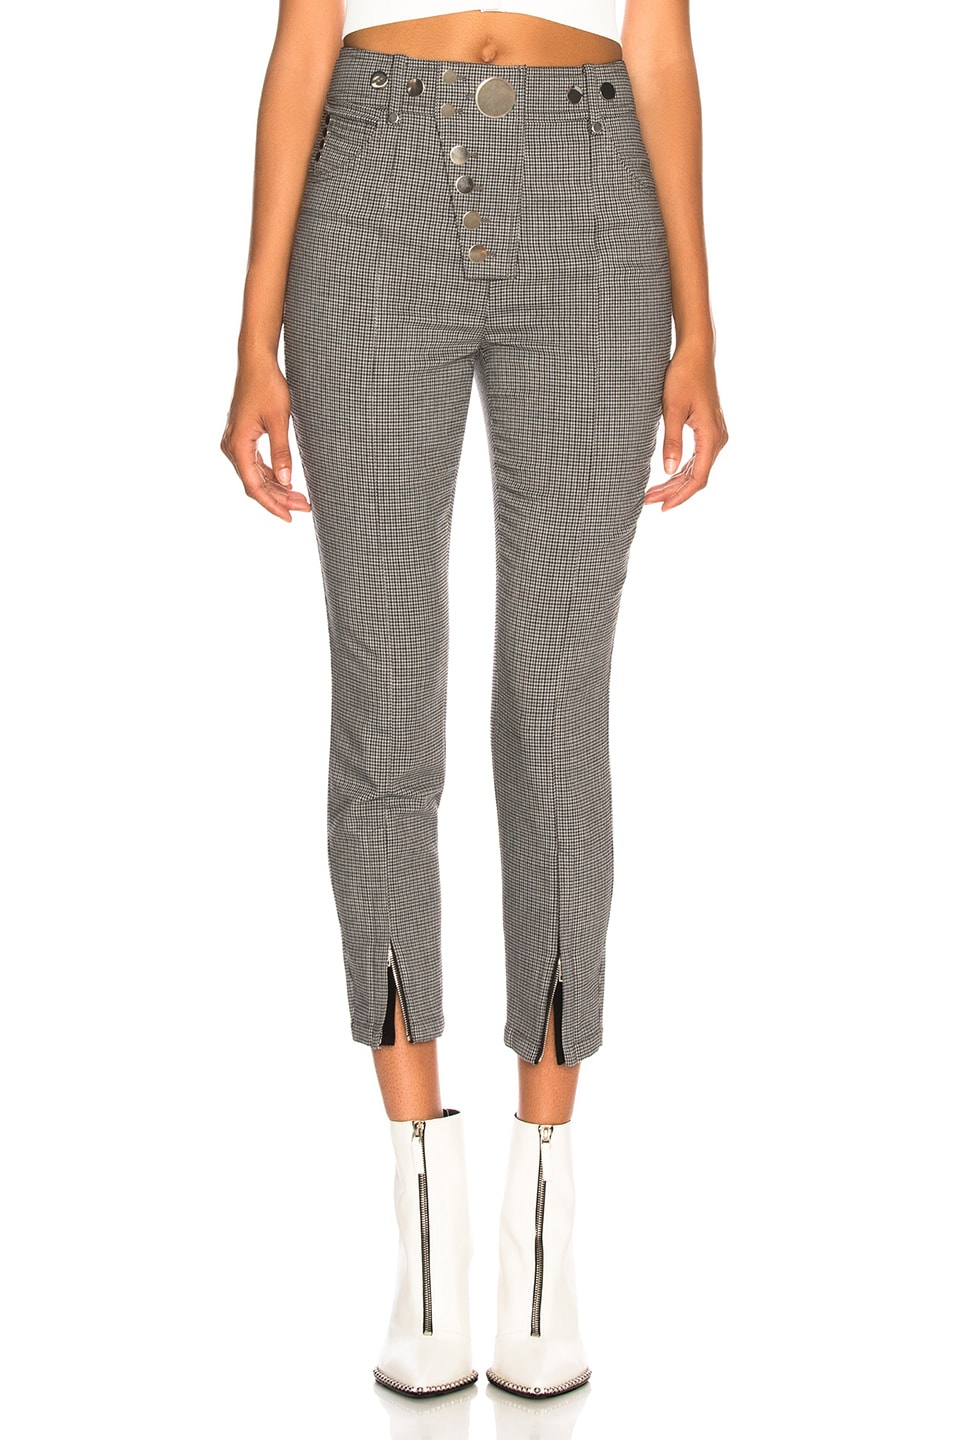 a673977e469c6a Image 1 of Alexander Wang High Waisted Legging in Grey Multi